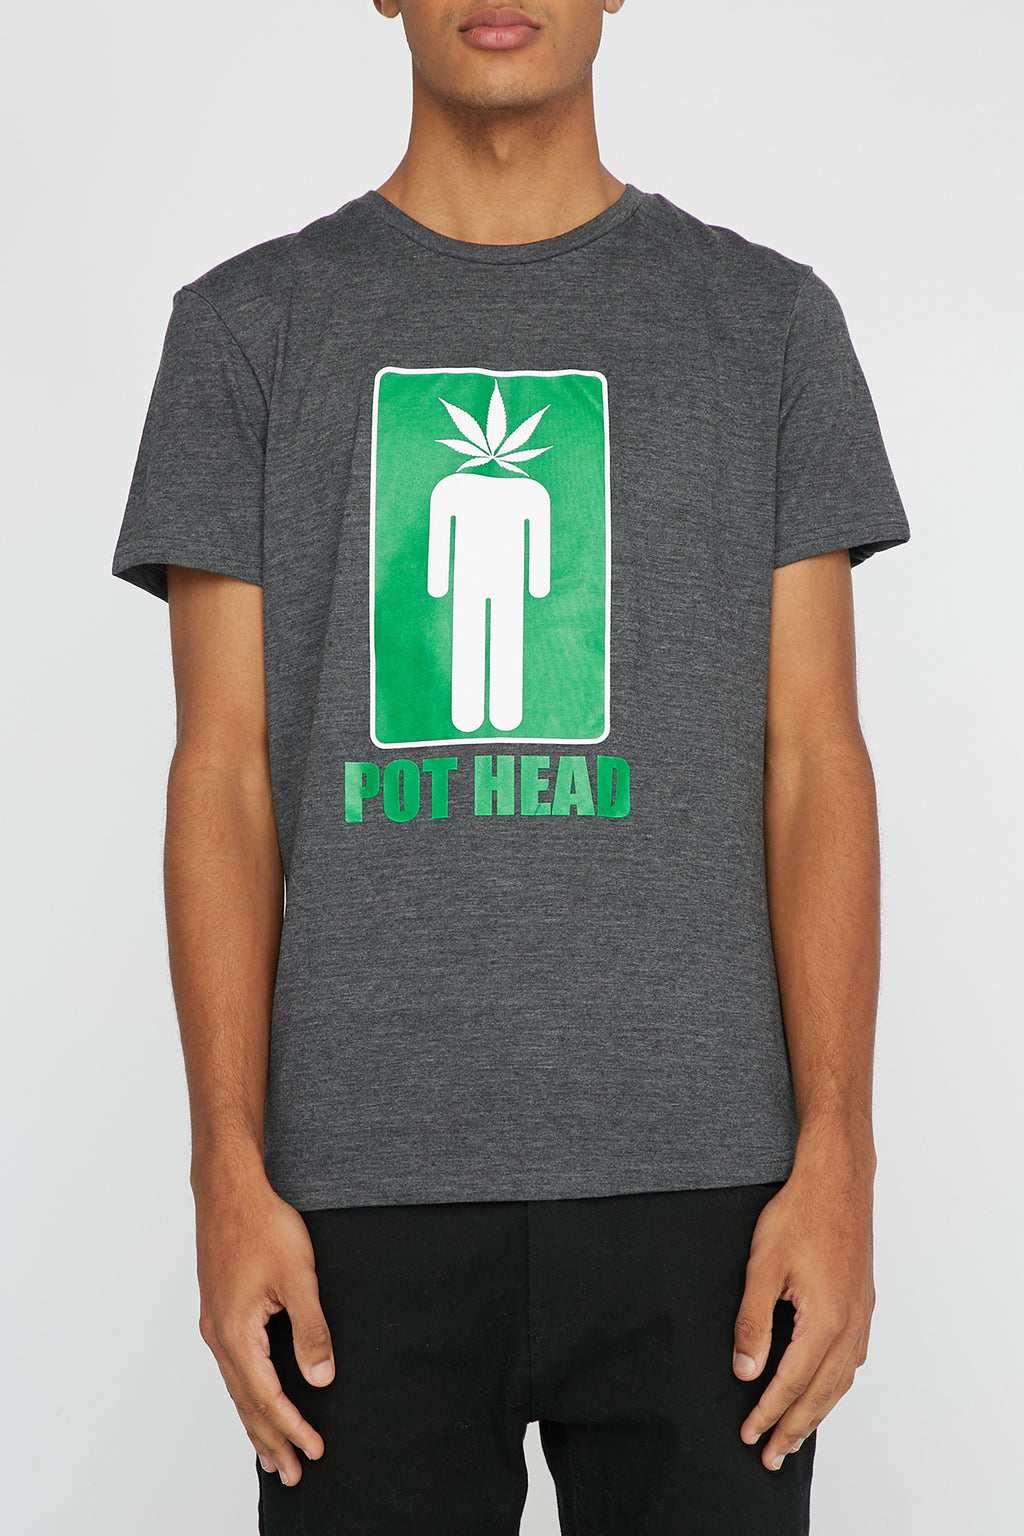 West49 Mens Pot Head T-Shirt